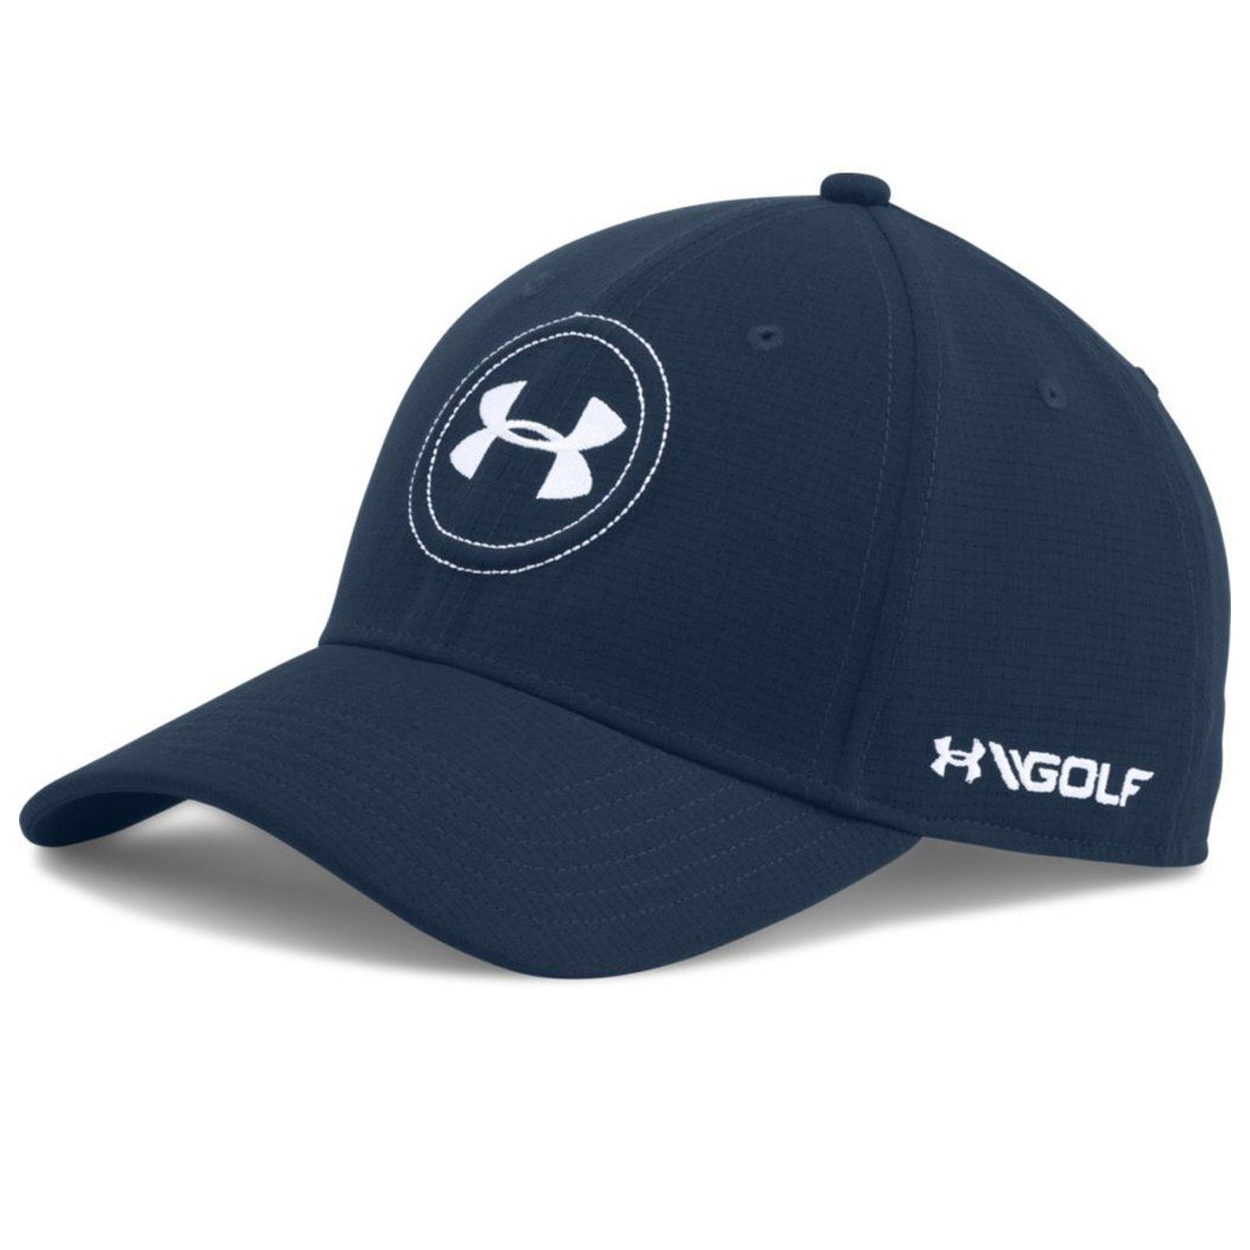 The Under Armour Tour 2.0 Stretch Fit Golf Hat features: ArmourVent fabric is light weight breath-able and wicks moisture away from the skin to keep you dry throughout your round. Stylish Under Armour branding front and back. Made of 100% performance polyester. Stretch fit design for a clean look. Under Armour Classic Fit Hats are a great way to protect your head and face from the sun's harmful rays.